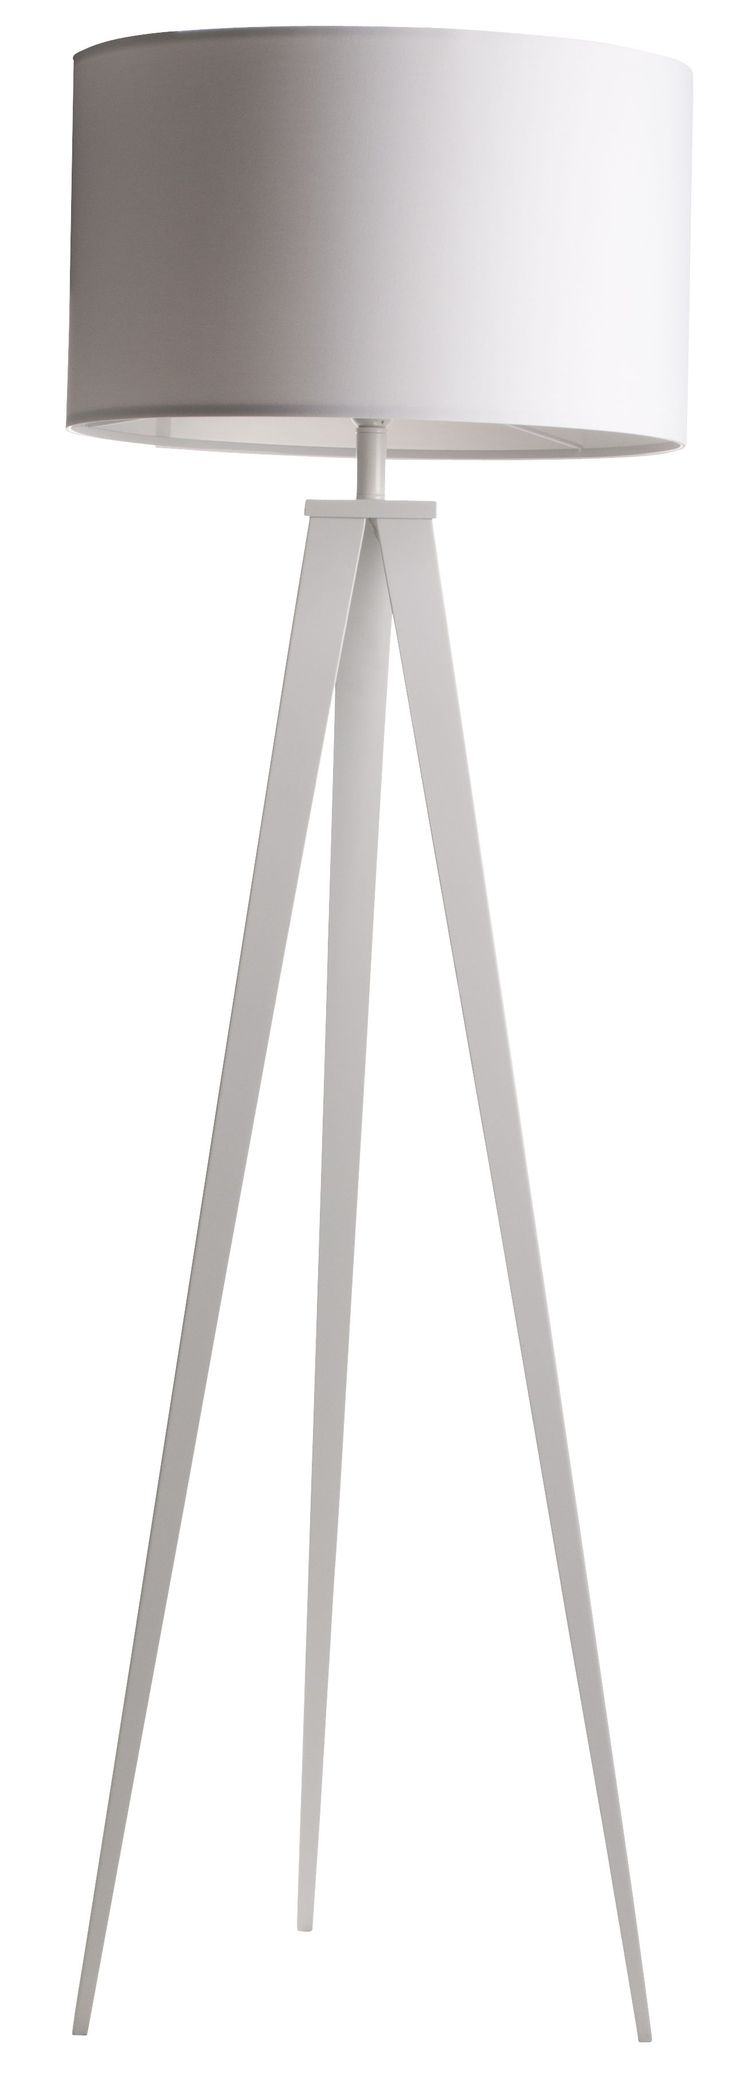 1000 ideas about tripod lamp on pinterest lamps floor lamps and table lamps - Tripod lamp ikea ...